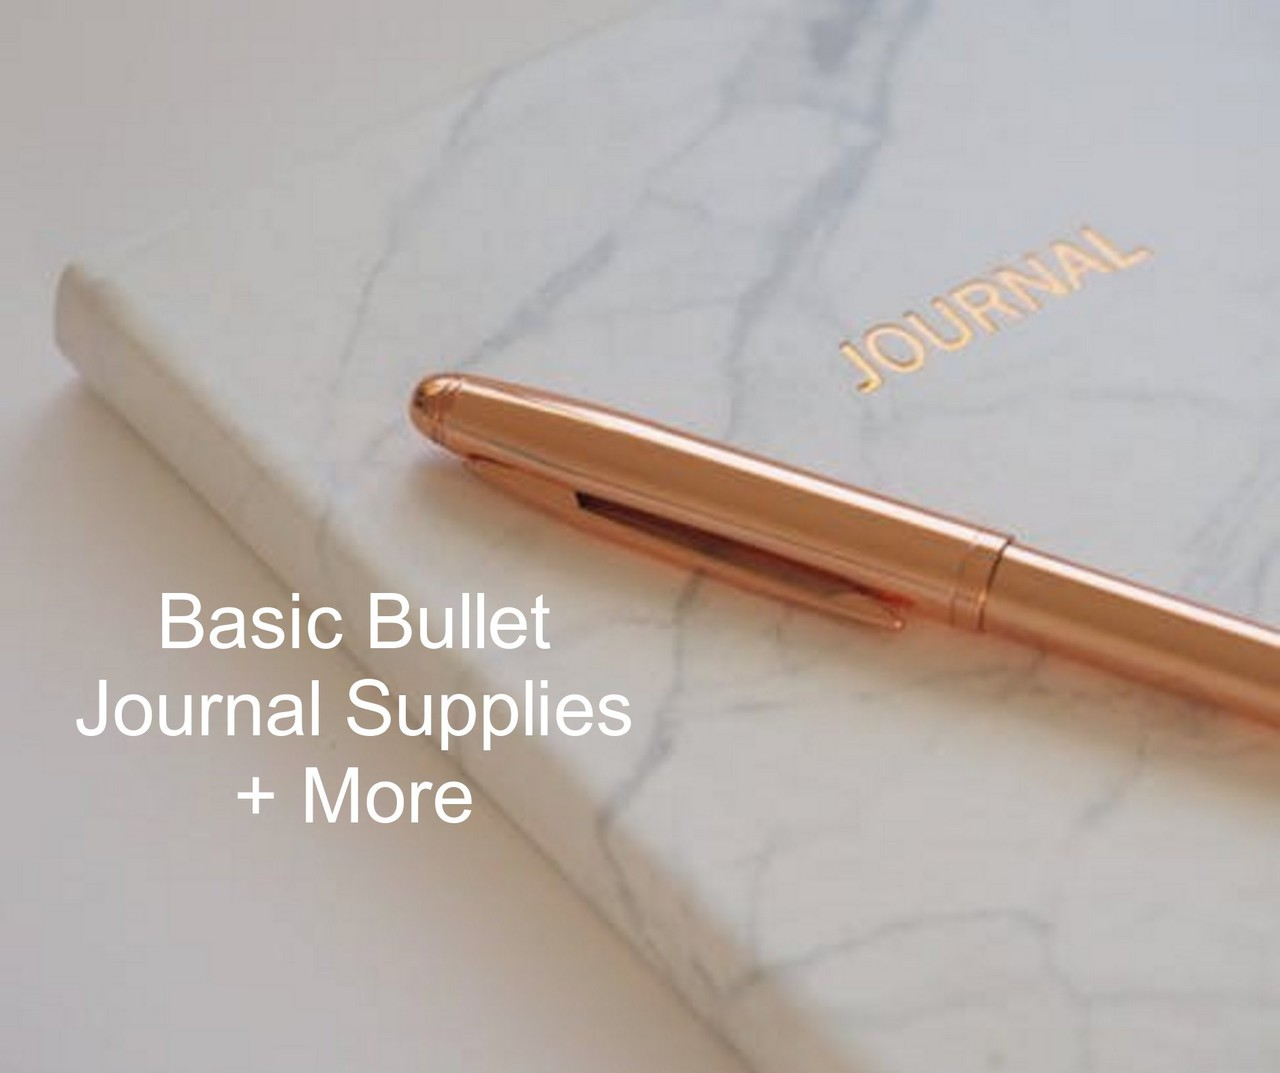 Basic Bullet Journal Supplies + More